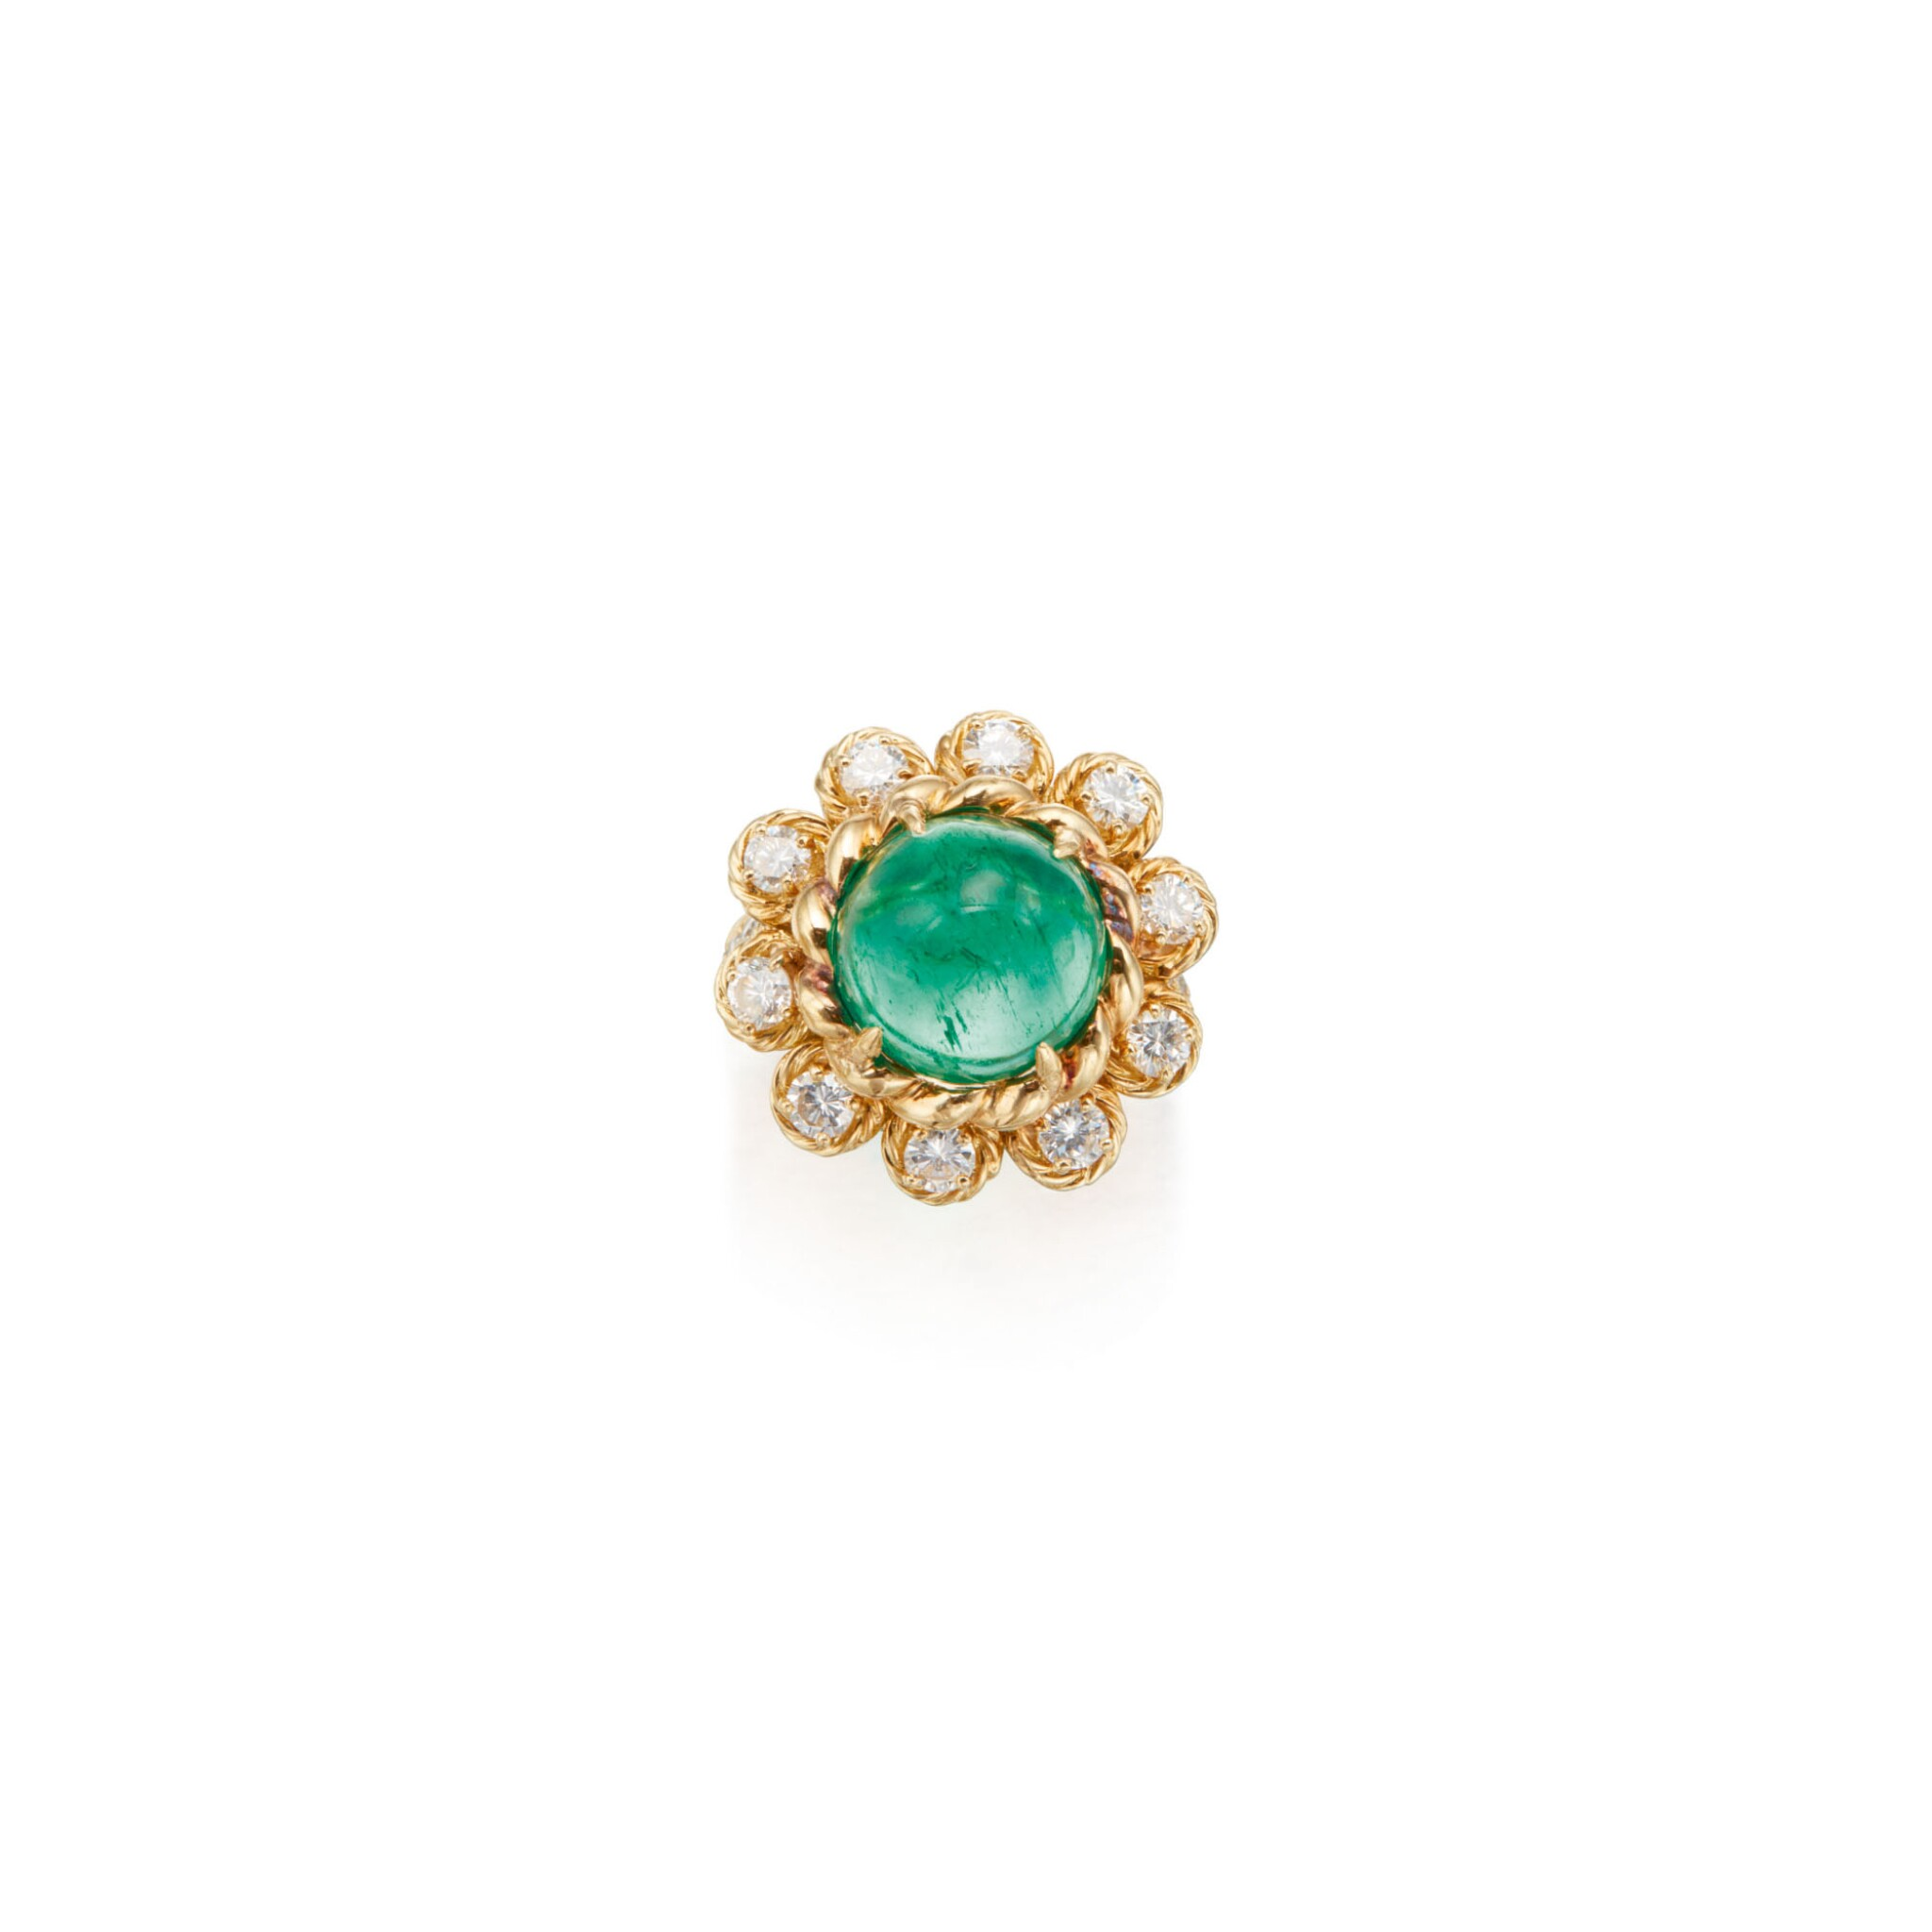 View full screen - View 1 of Lot 74. EMERALD AND DIAMOND RING, VAN CLEEF & ARPELS.